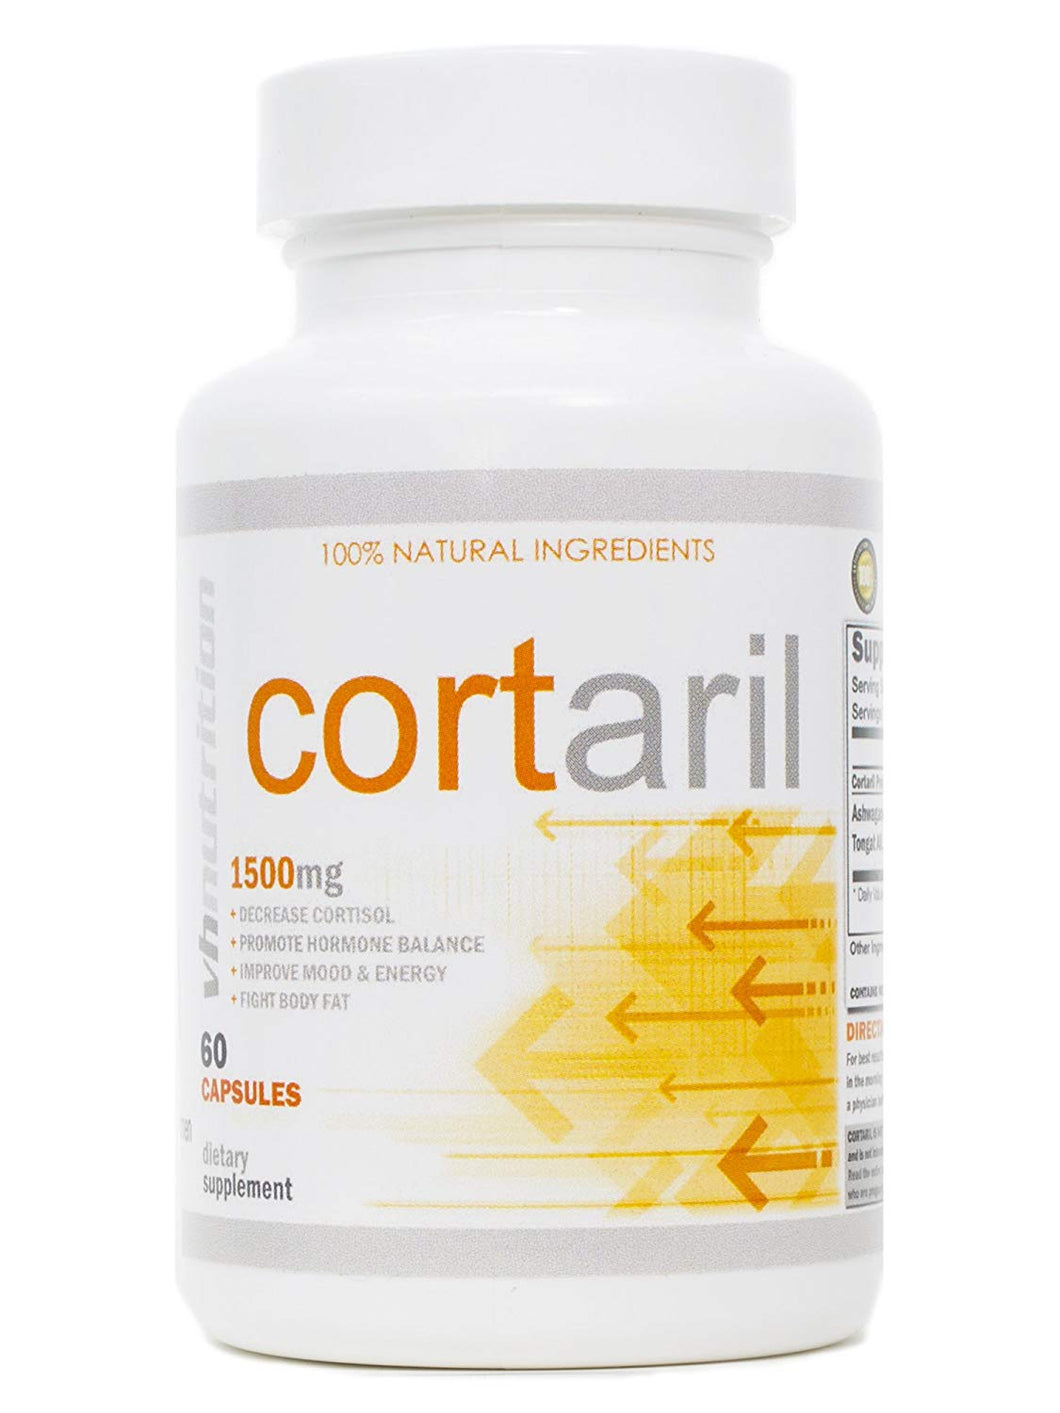 Cortaril Cortisol Manager and Blocker for Men and Women